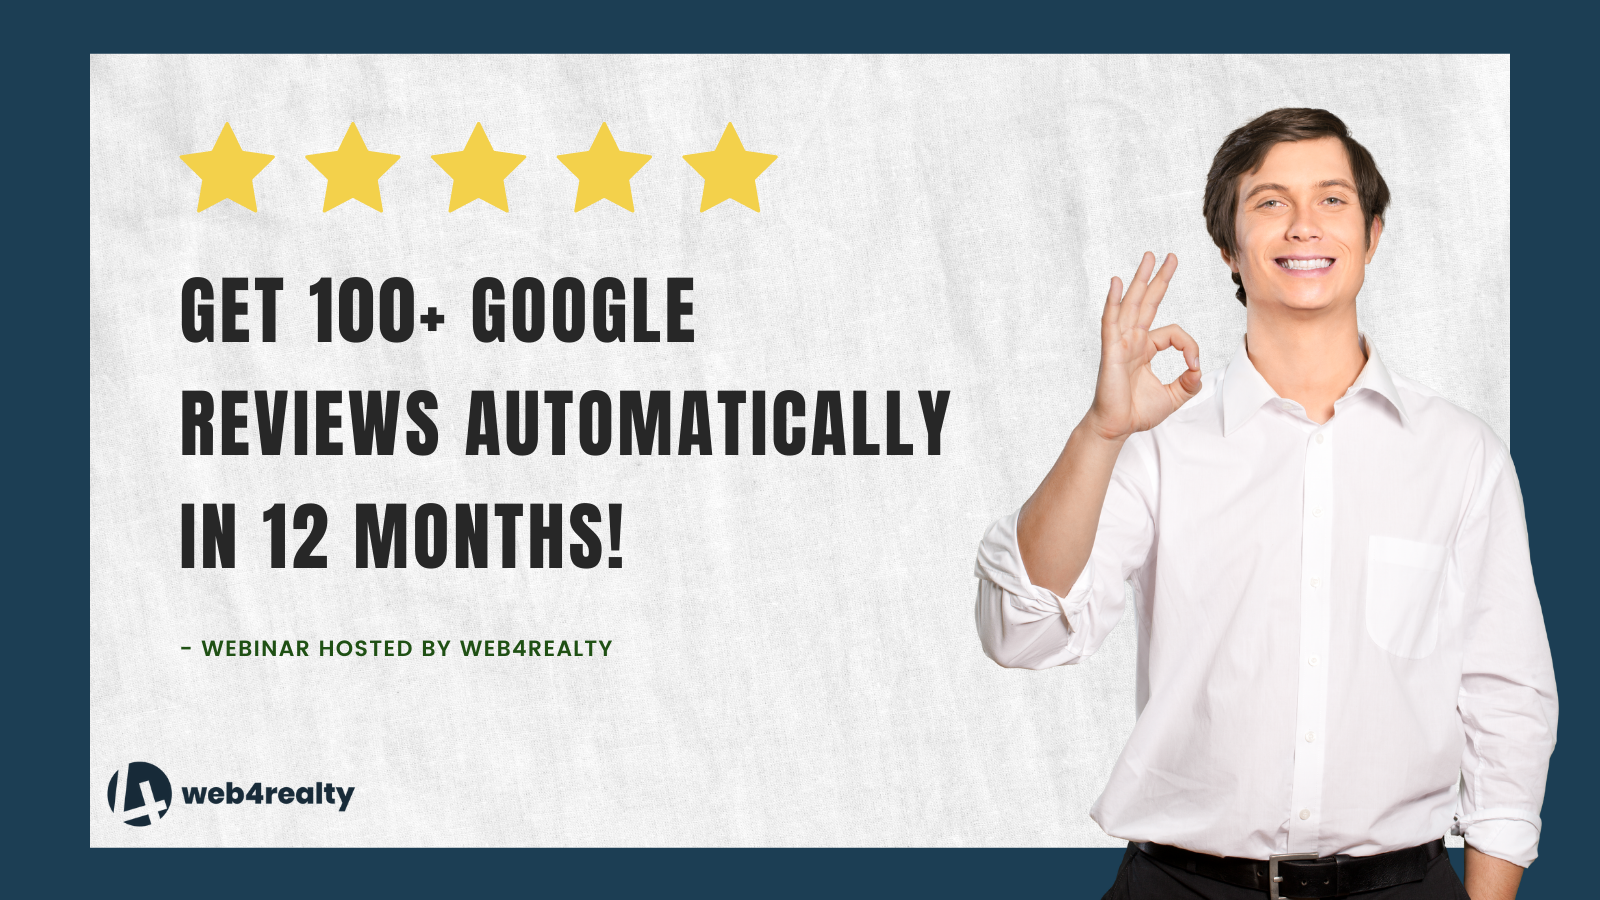 Get 100+ Google Reviews Automatically in 12 Months!